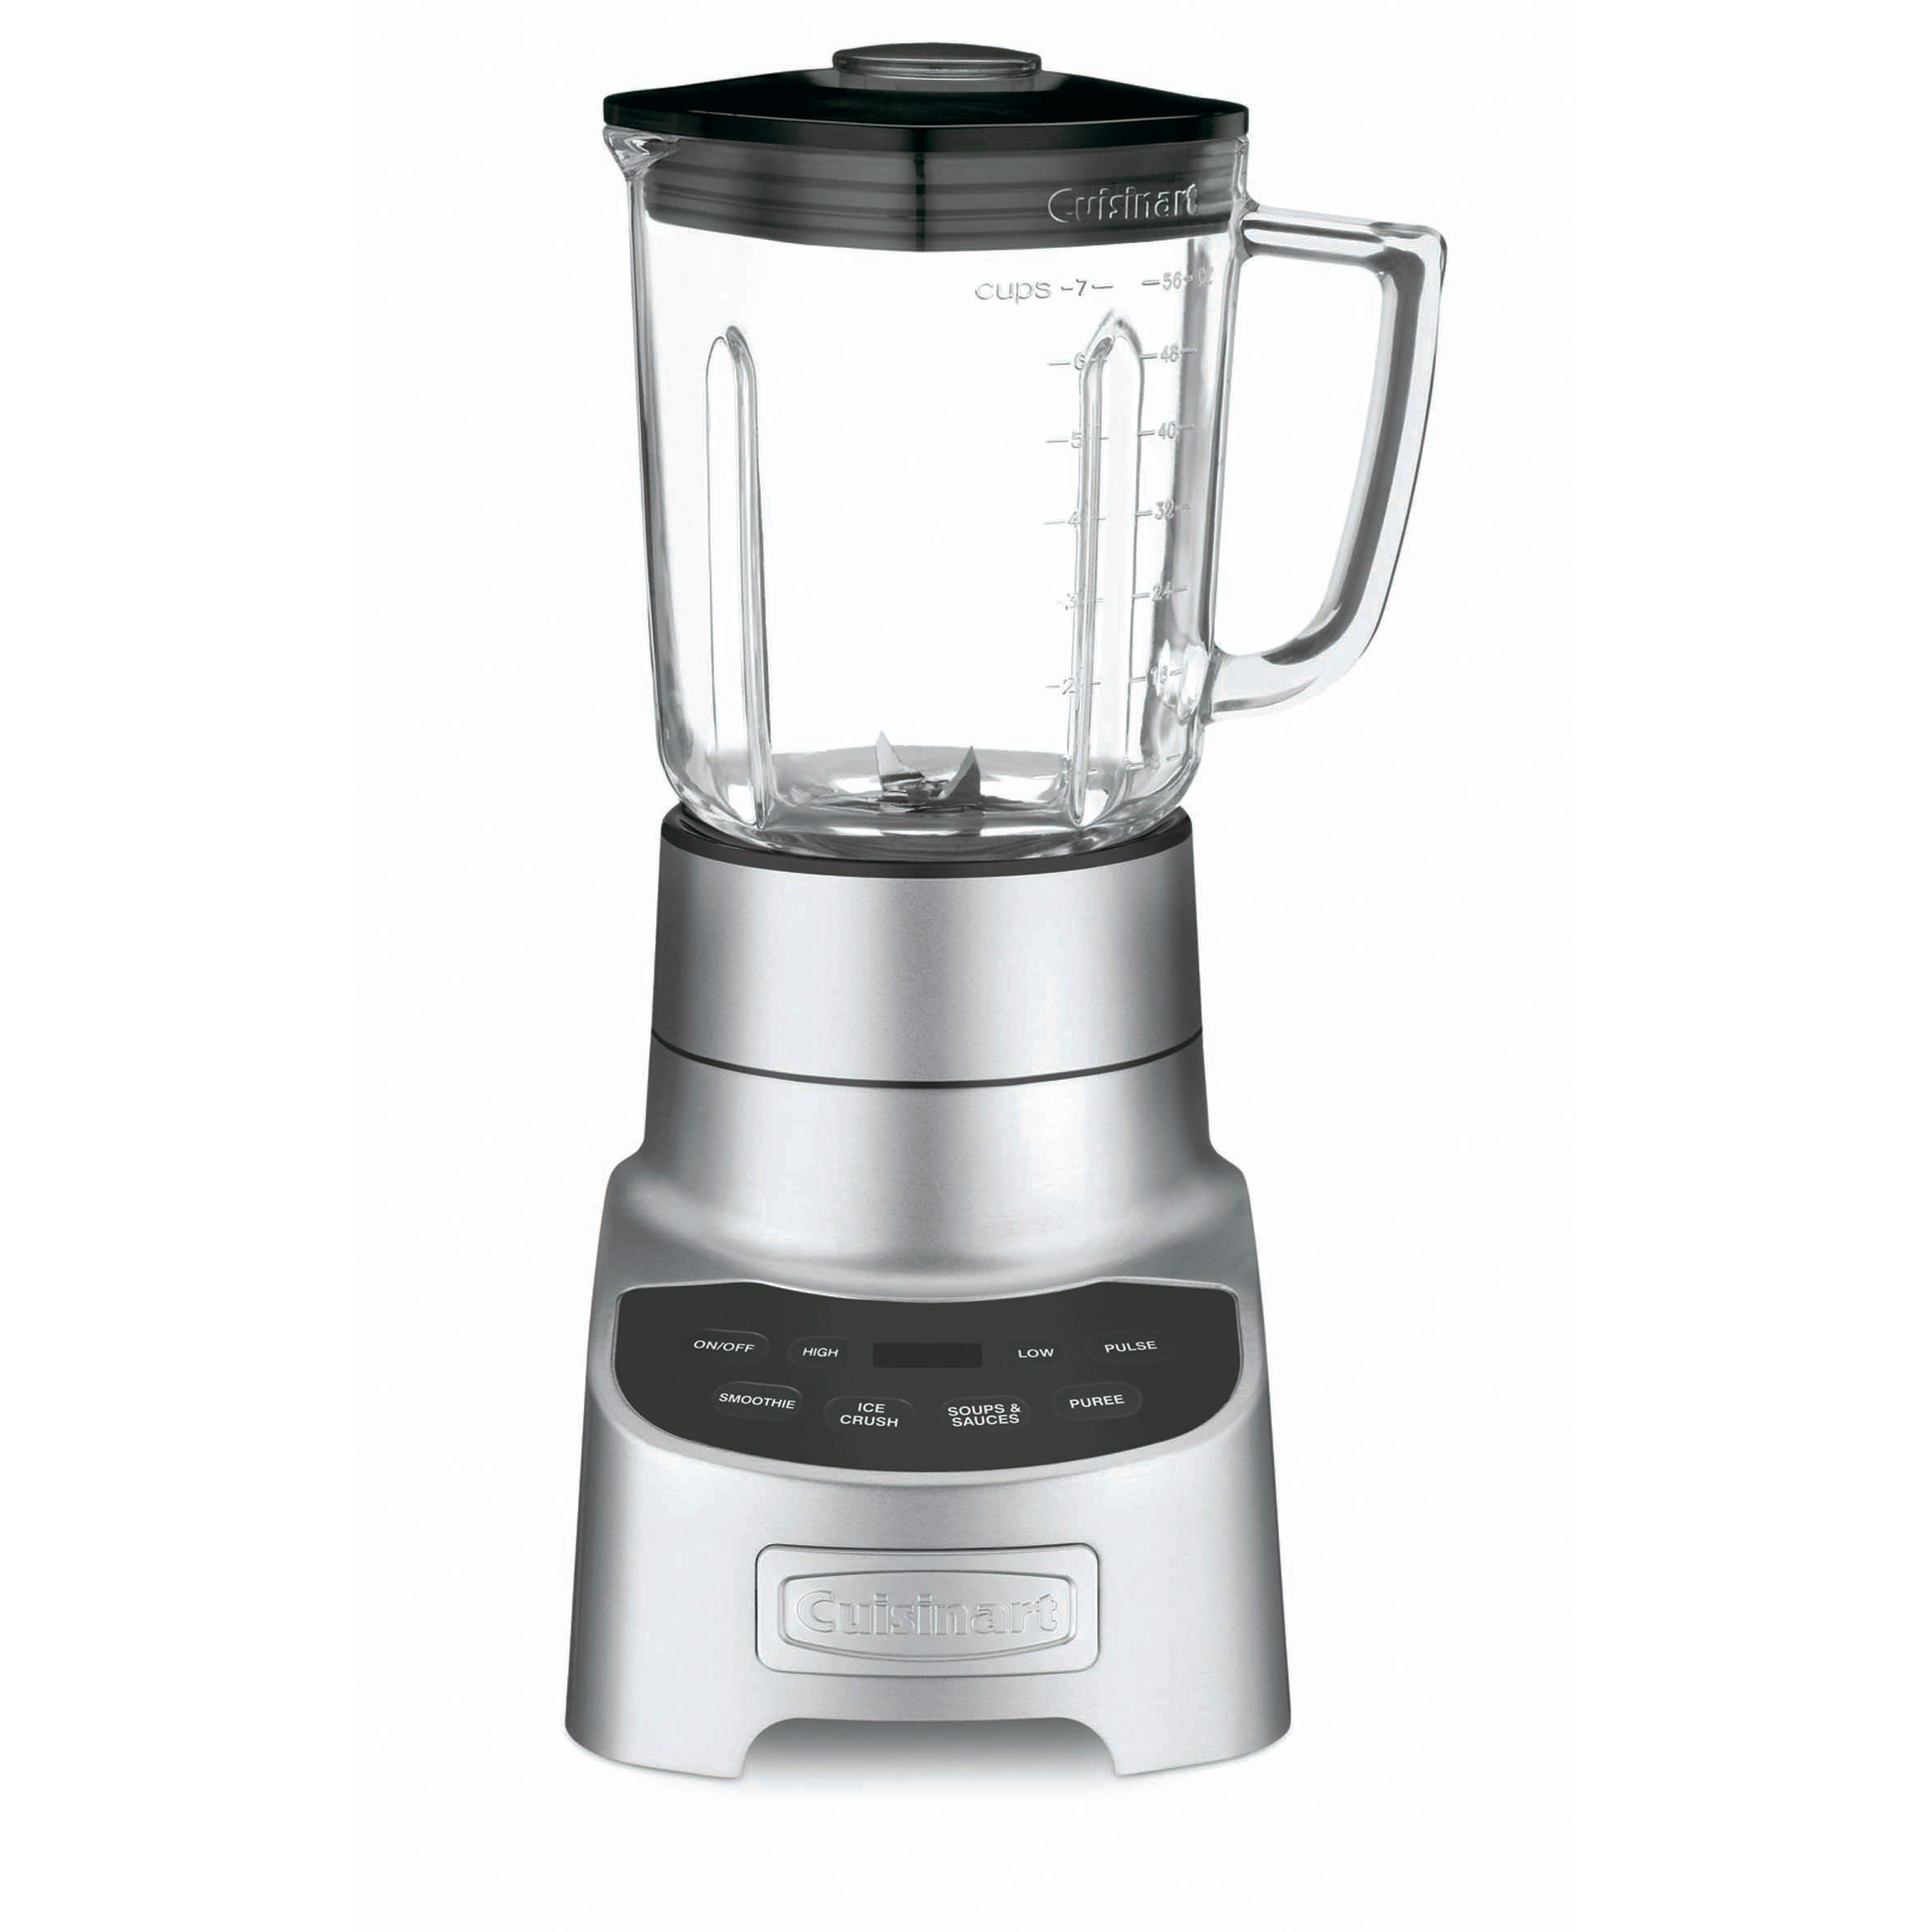 Cuisinart CBT-700FR Die-cast 700-watt Blender (Refurbished)